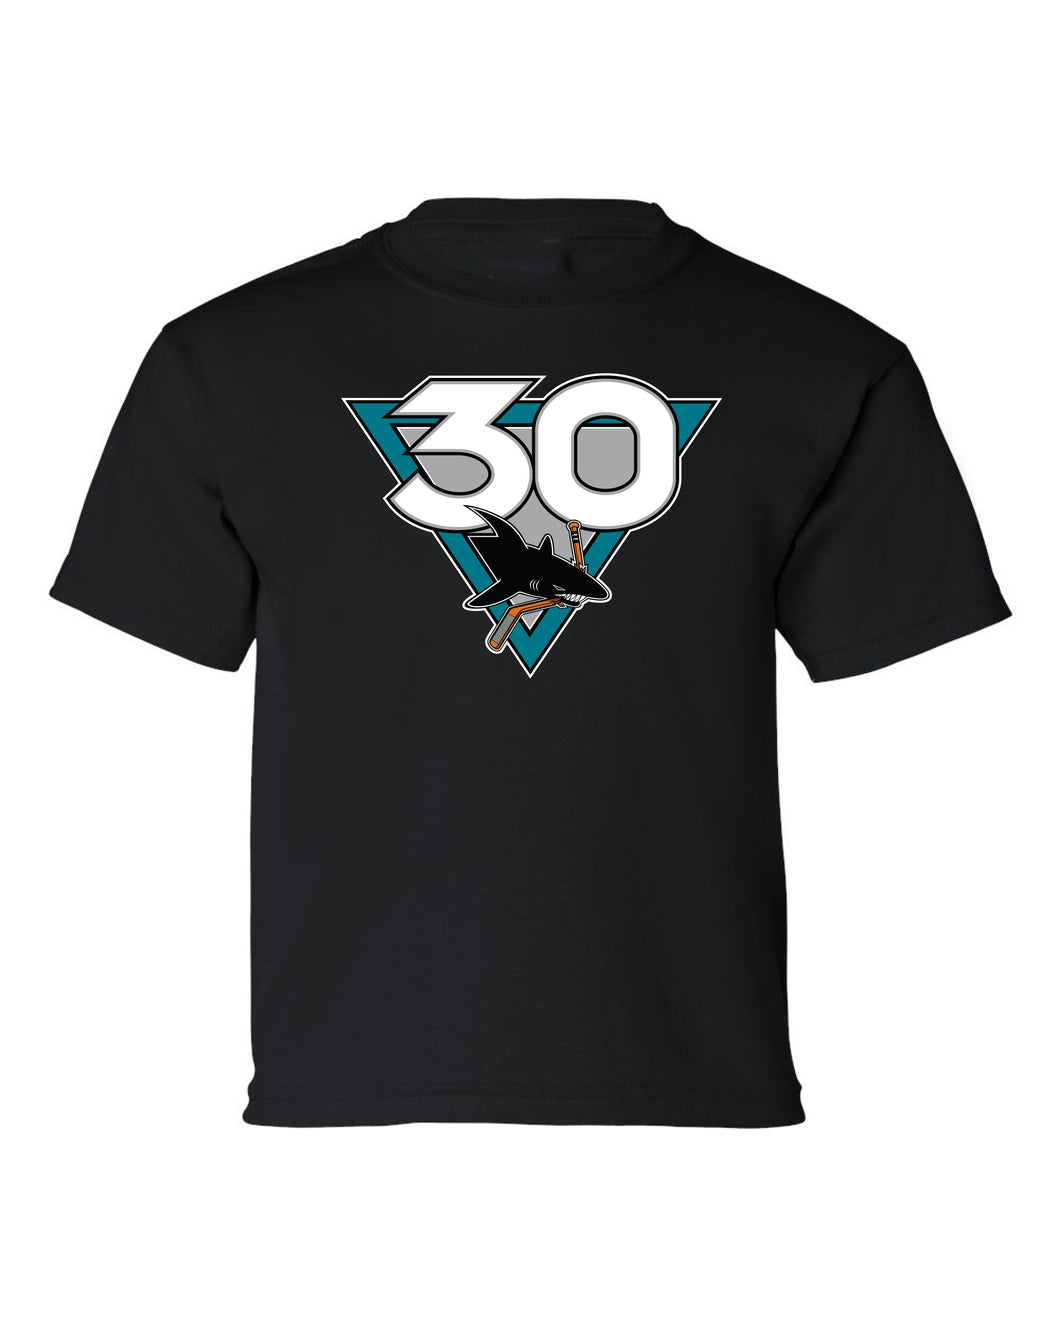 Men's San Jose Sharks Black 30th Anniversary Heritage Short Sleeve Tee